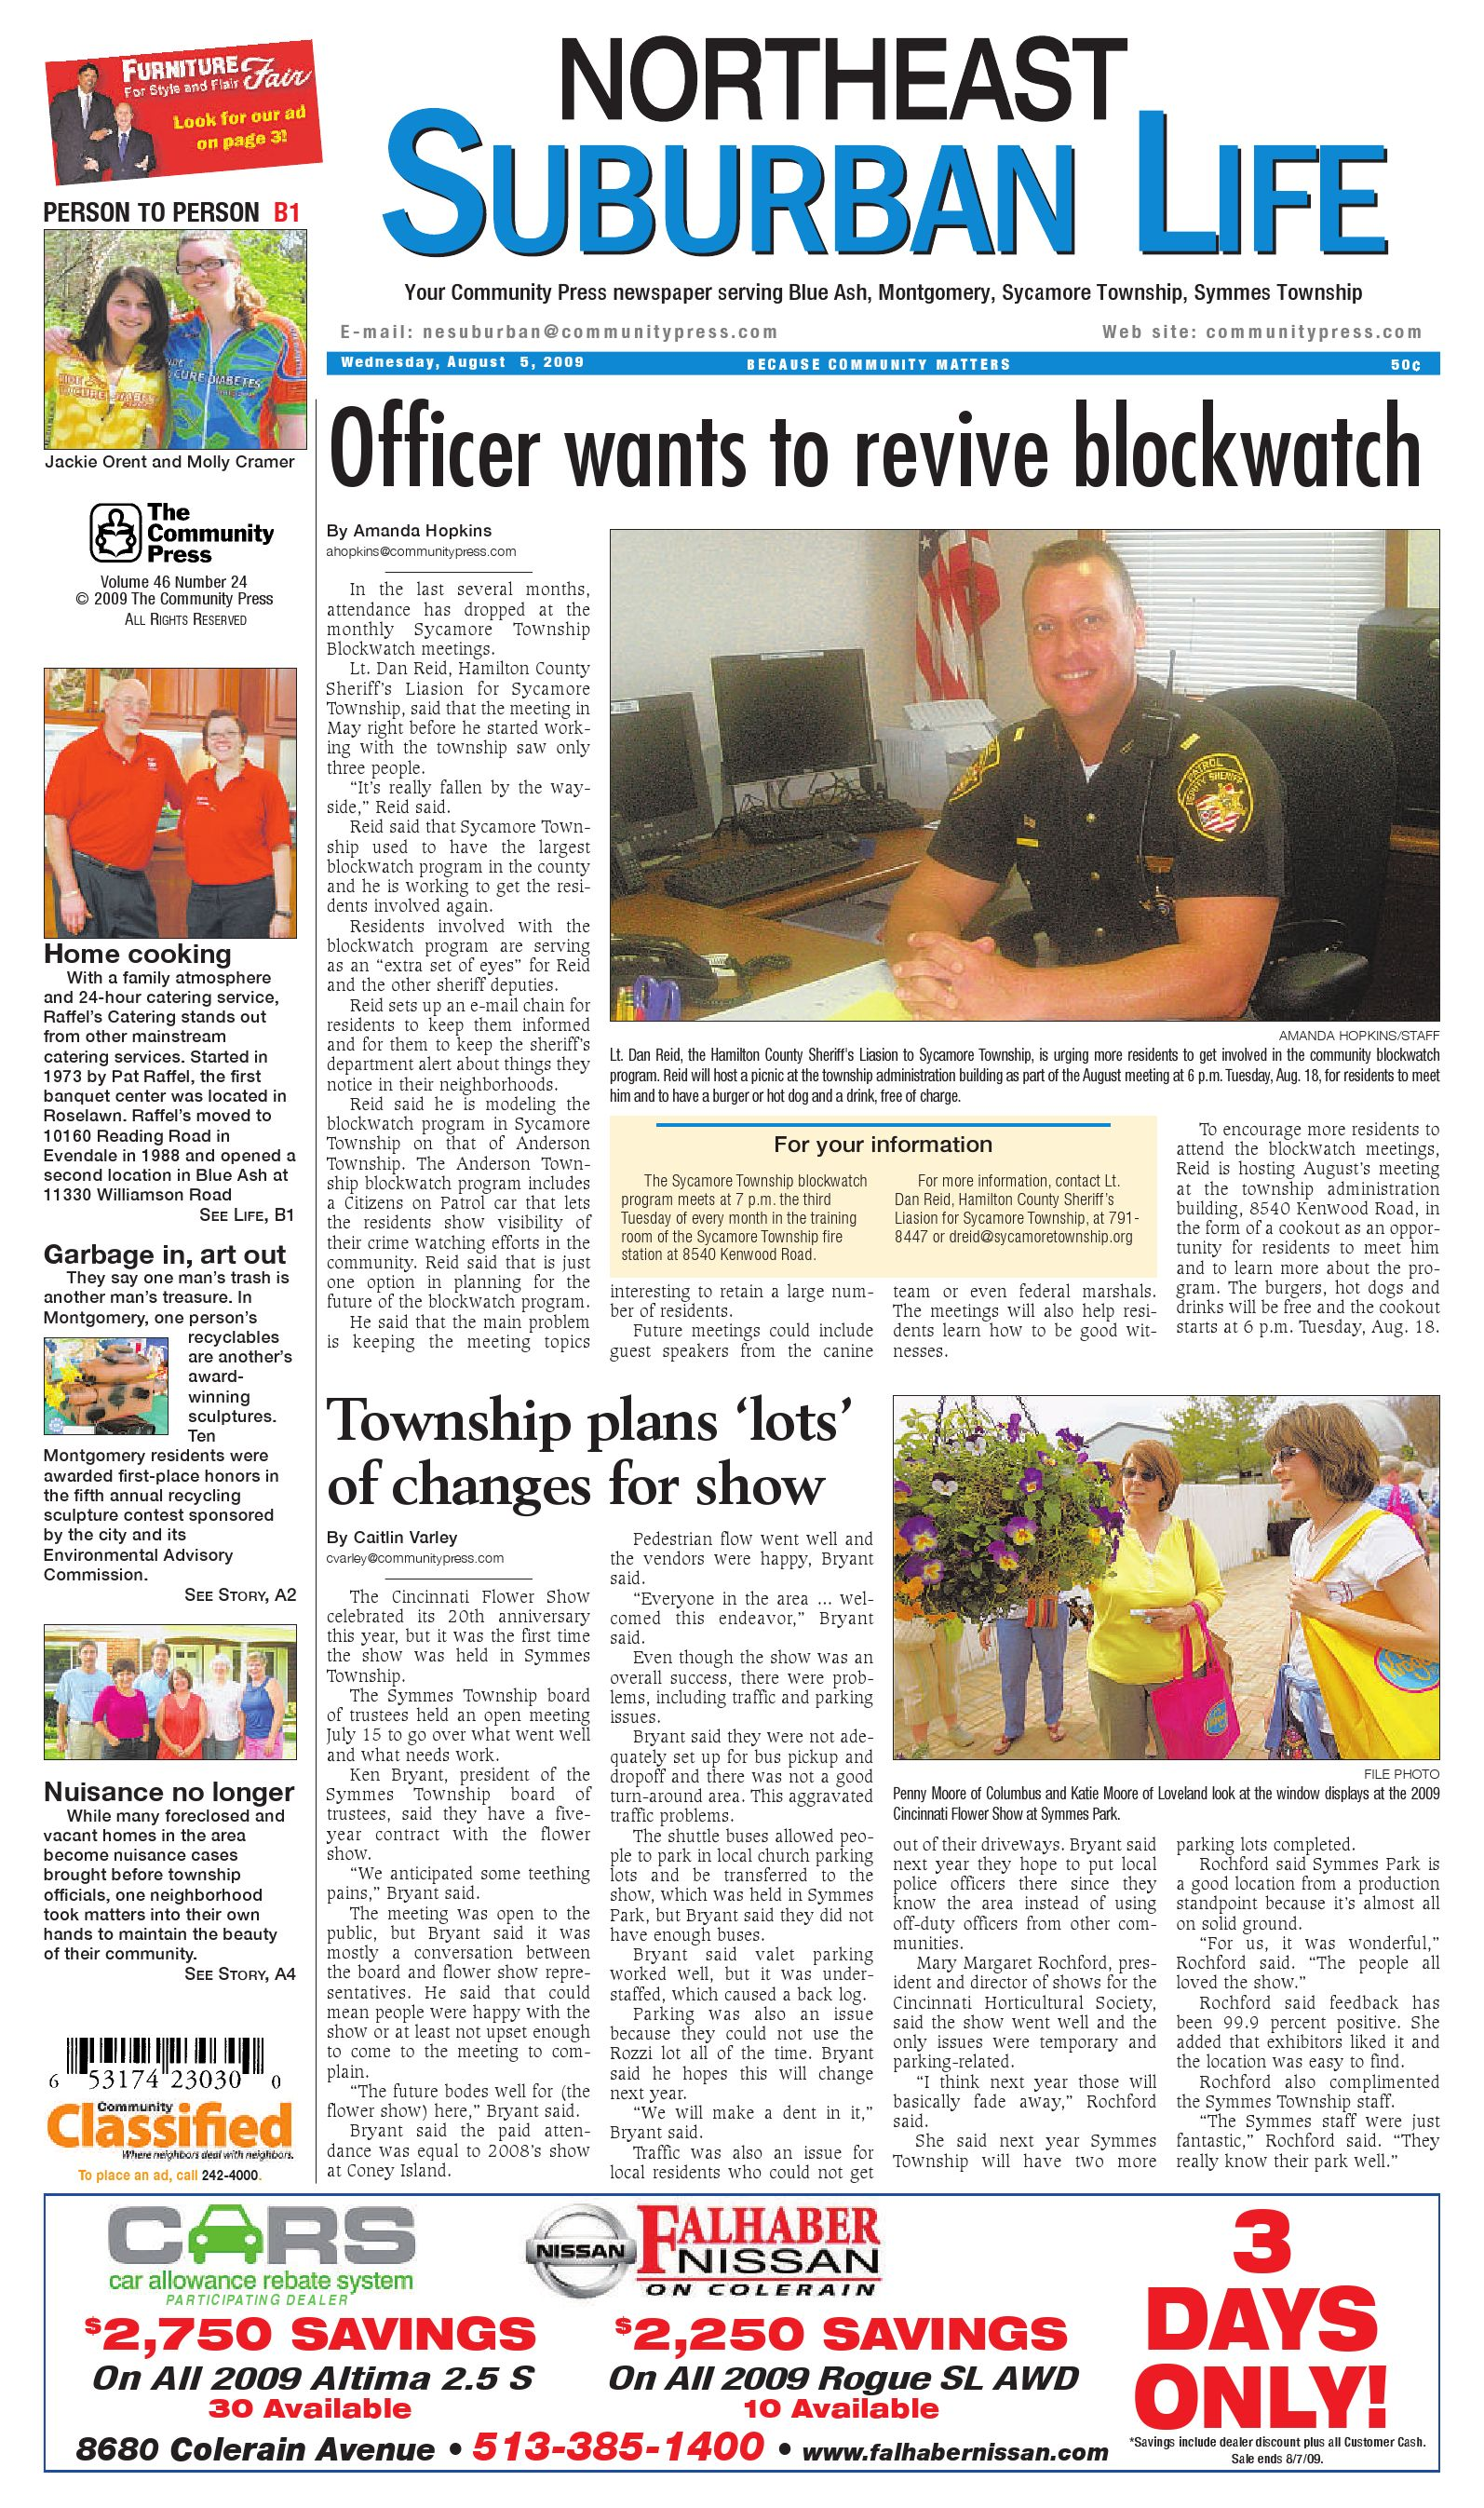 northeast-suburban-life-080509 by Enquirer Media - issuu